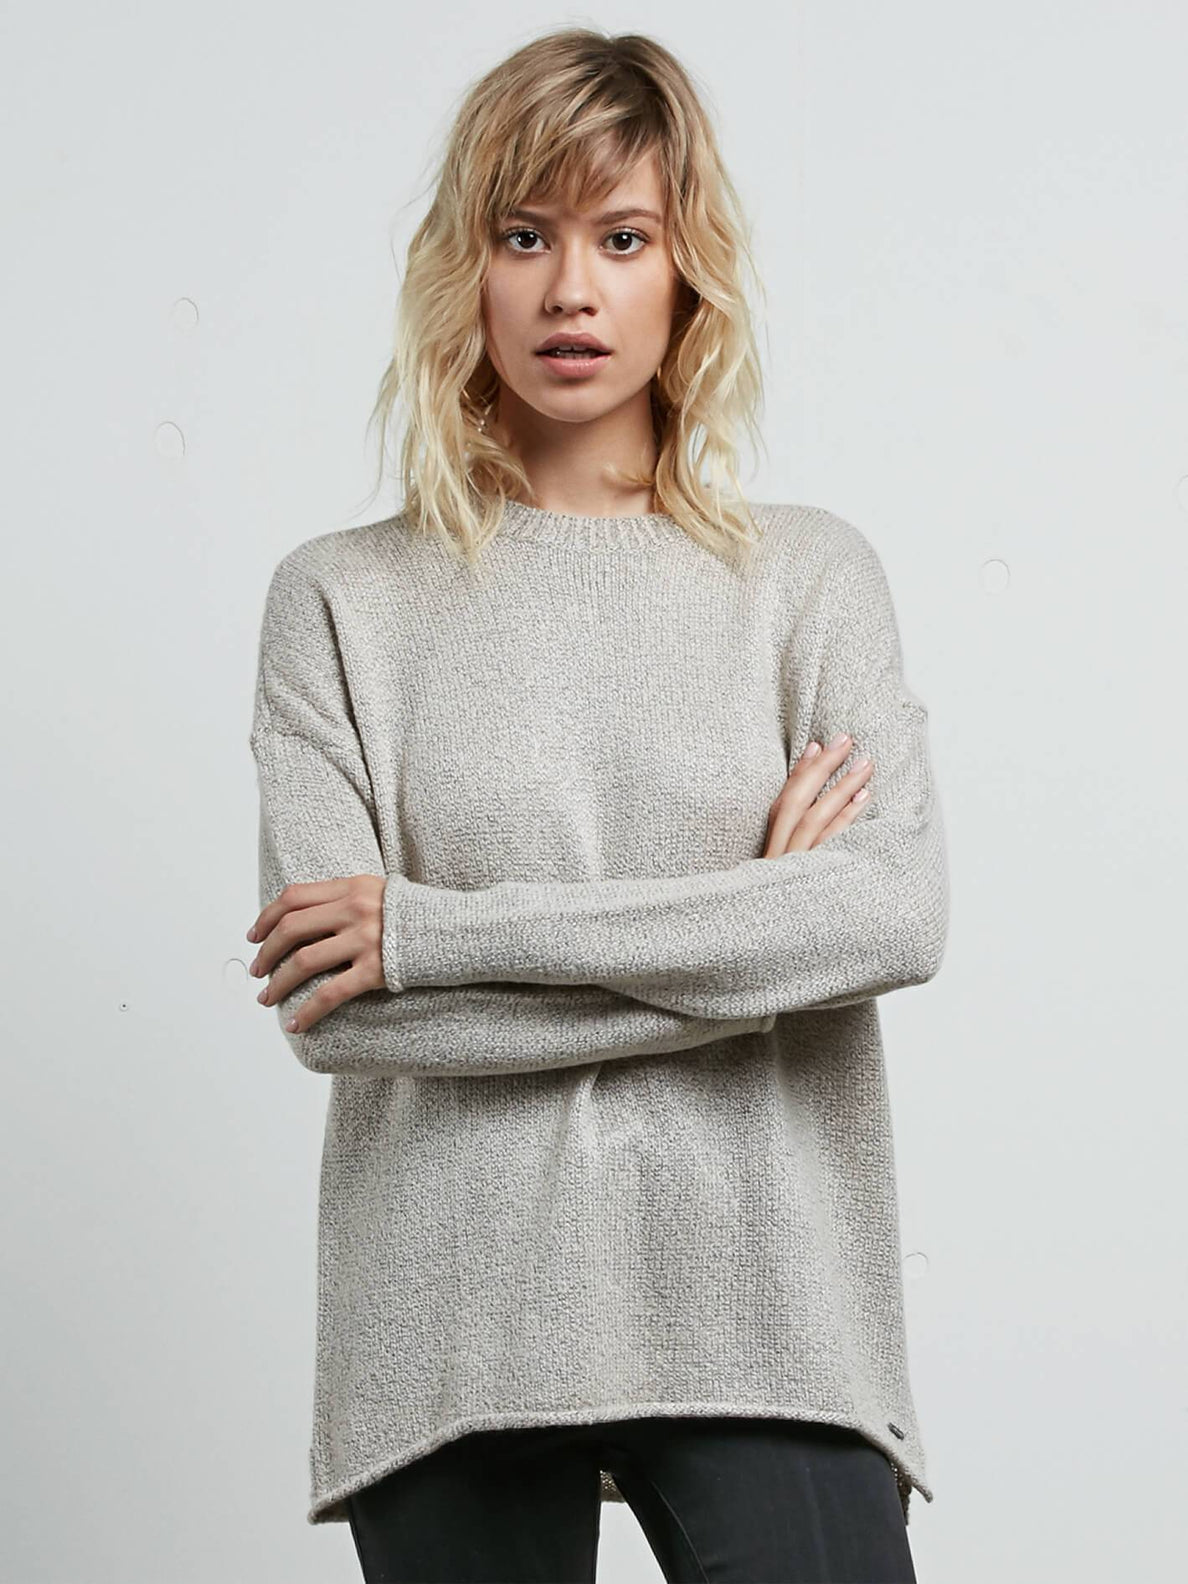 Yarn Moji Sweater In Light Grey, Front View